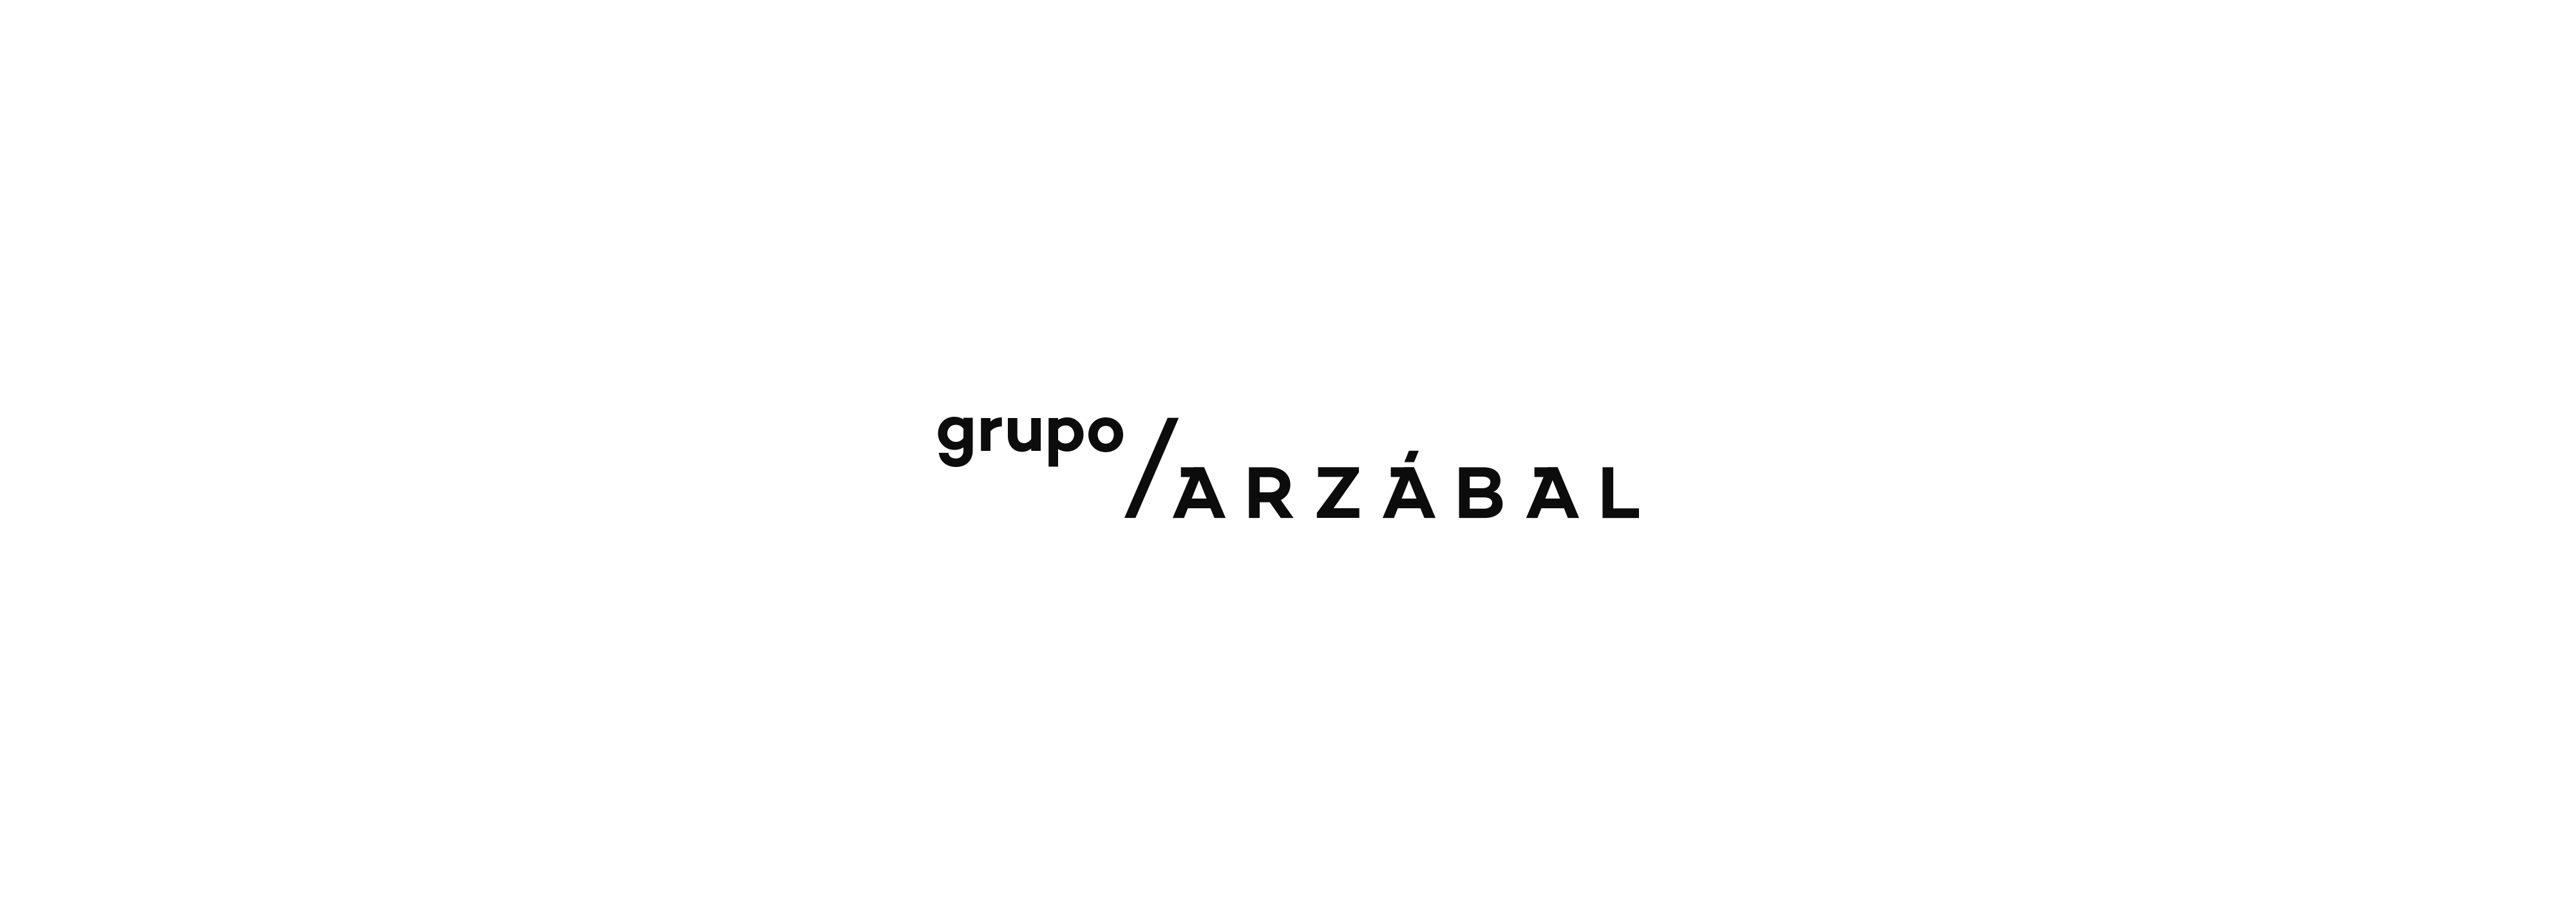 Grupo Arzábal Branding by The Woork Co